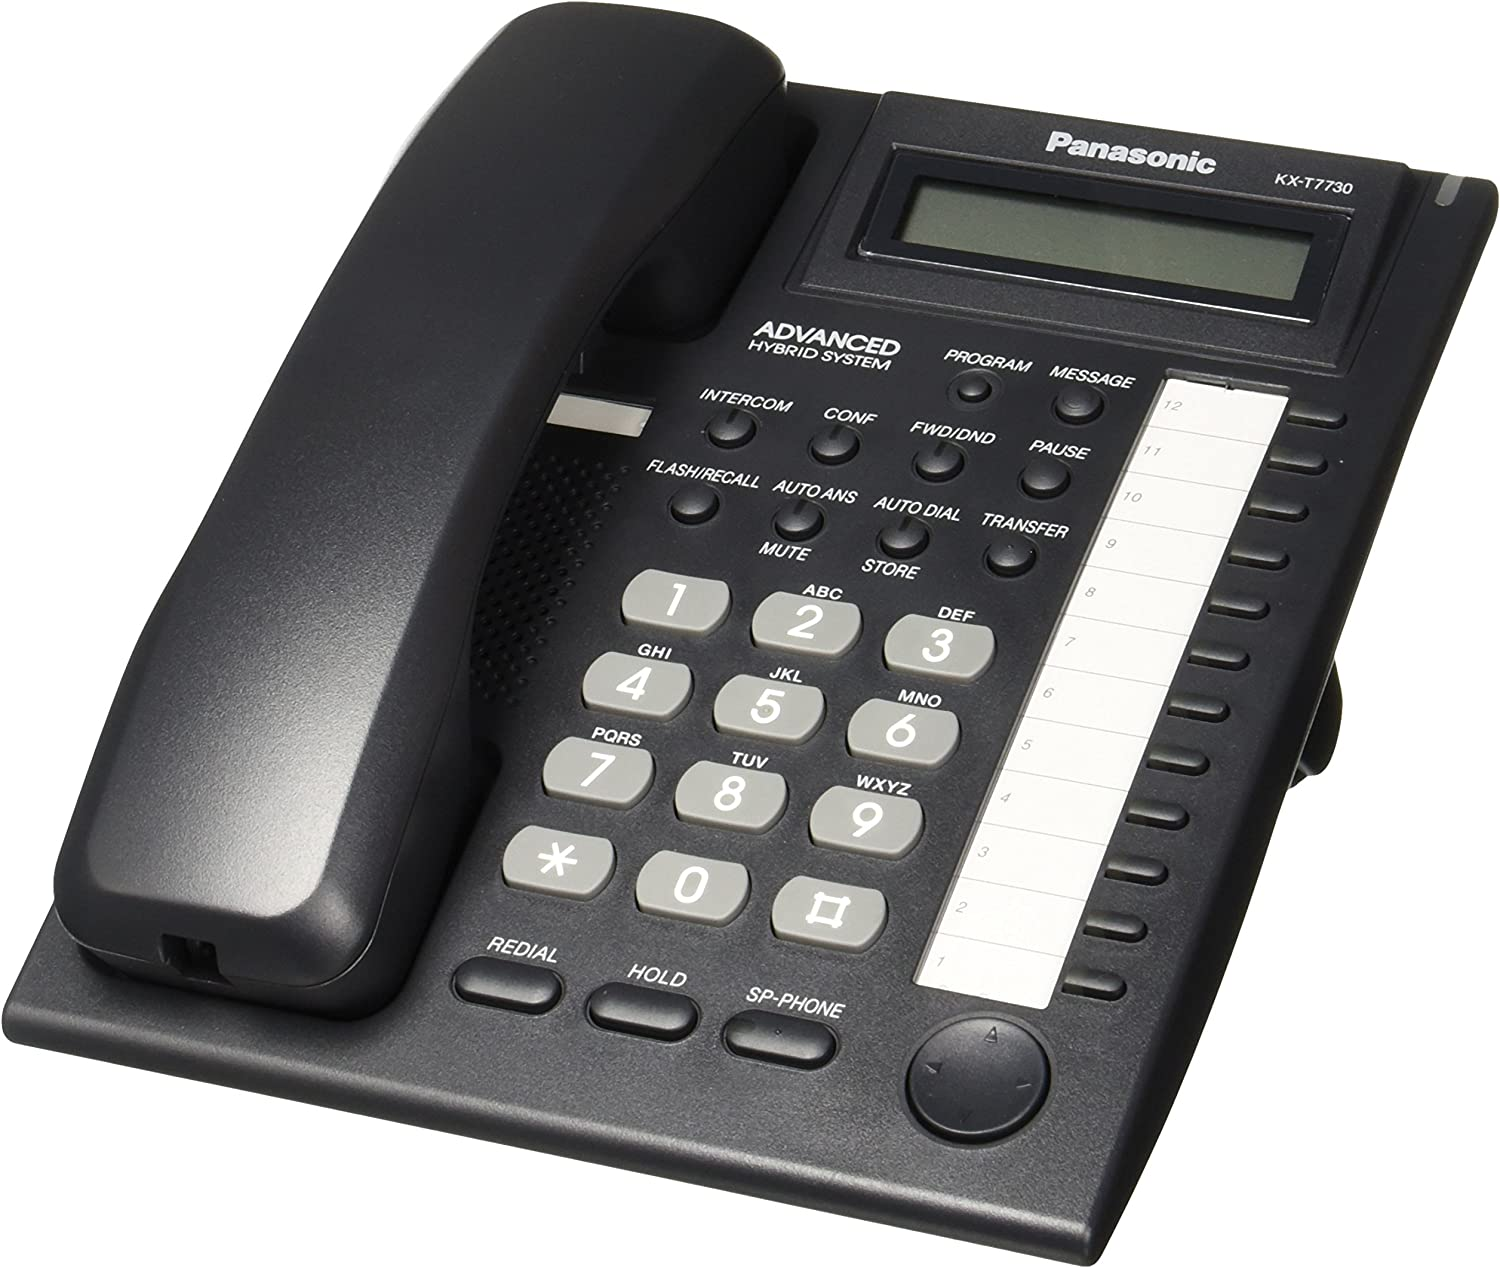 Panasonic KX-T7730 Telephone Black